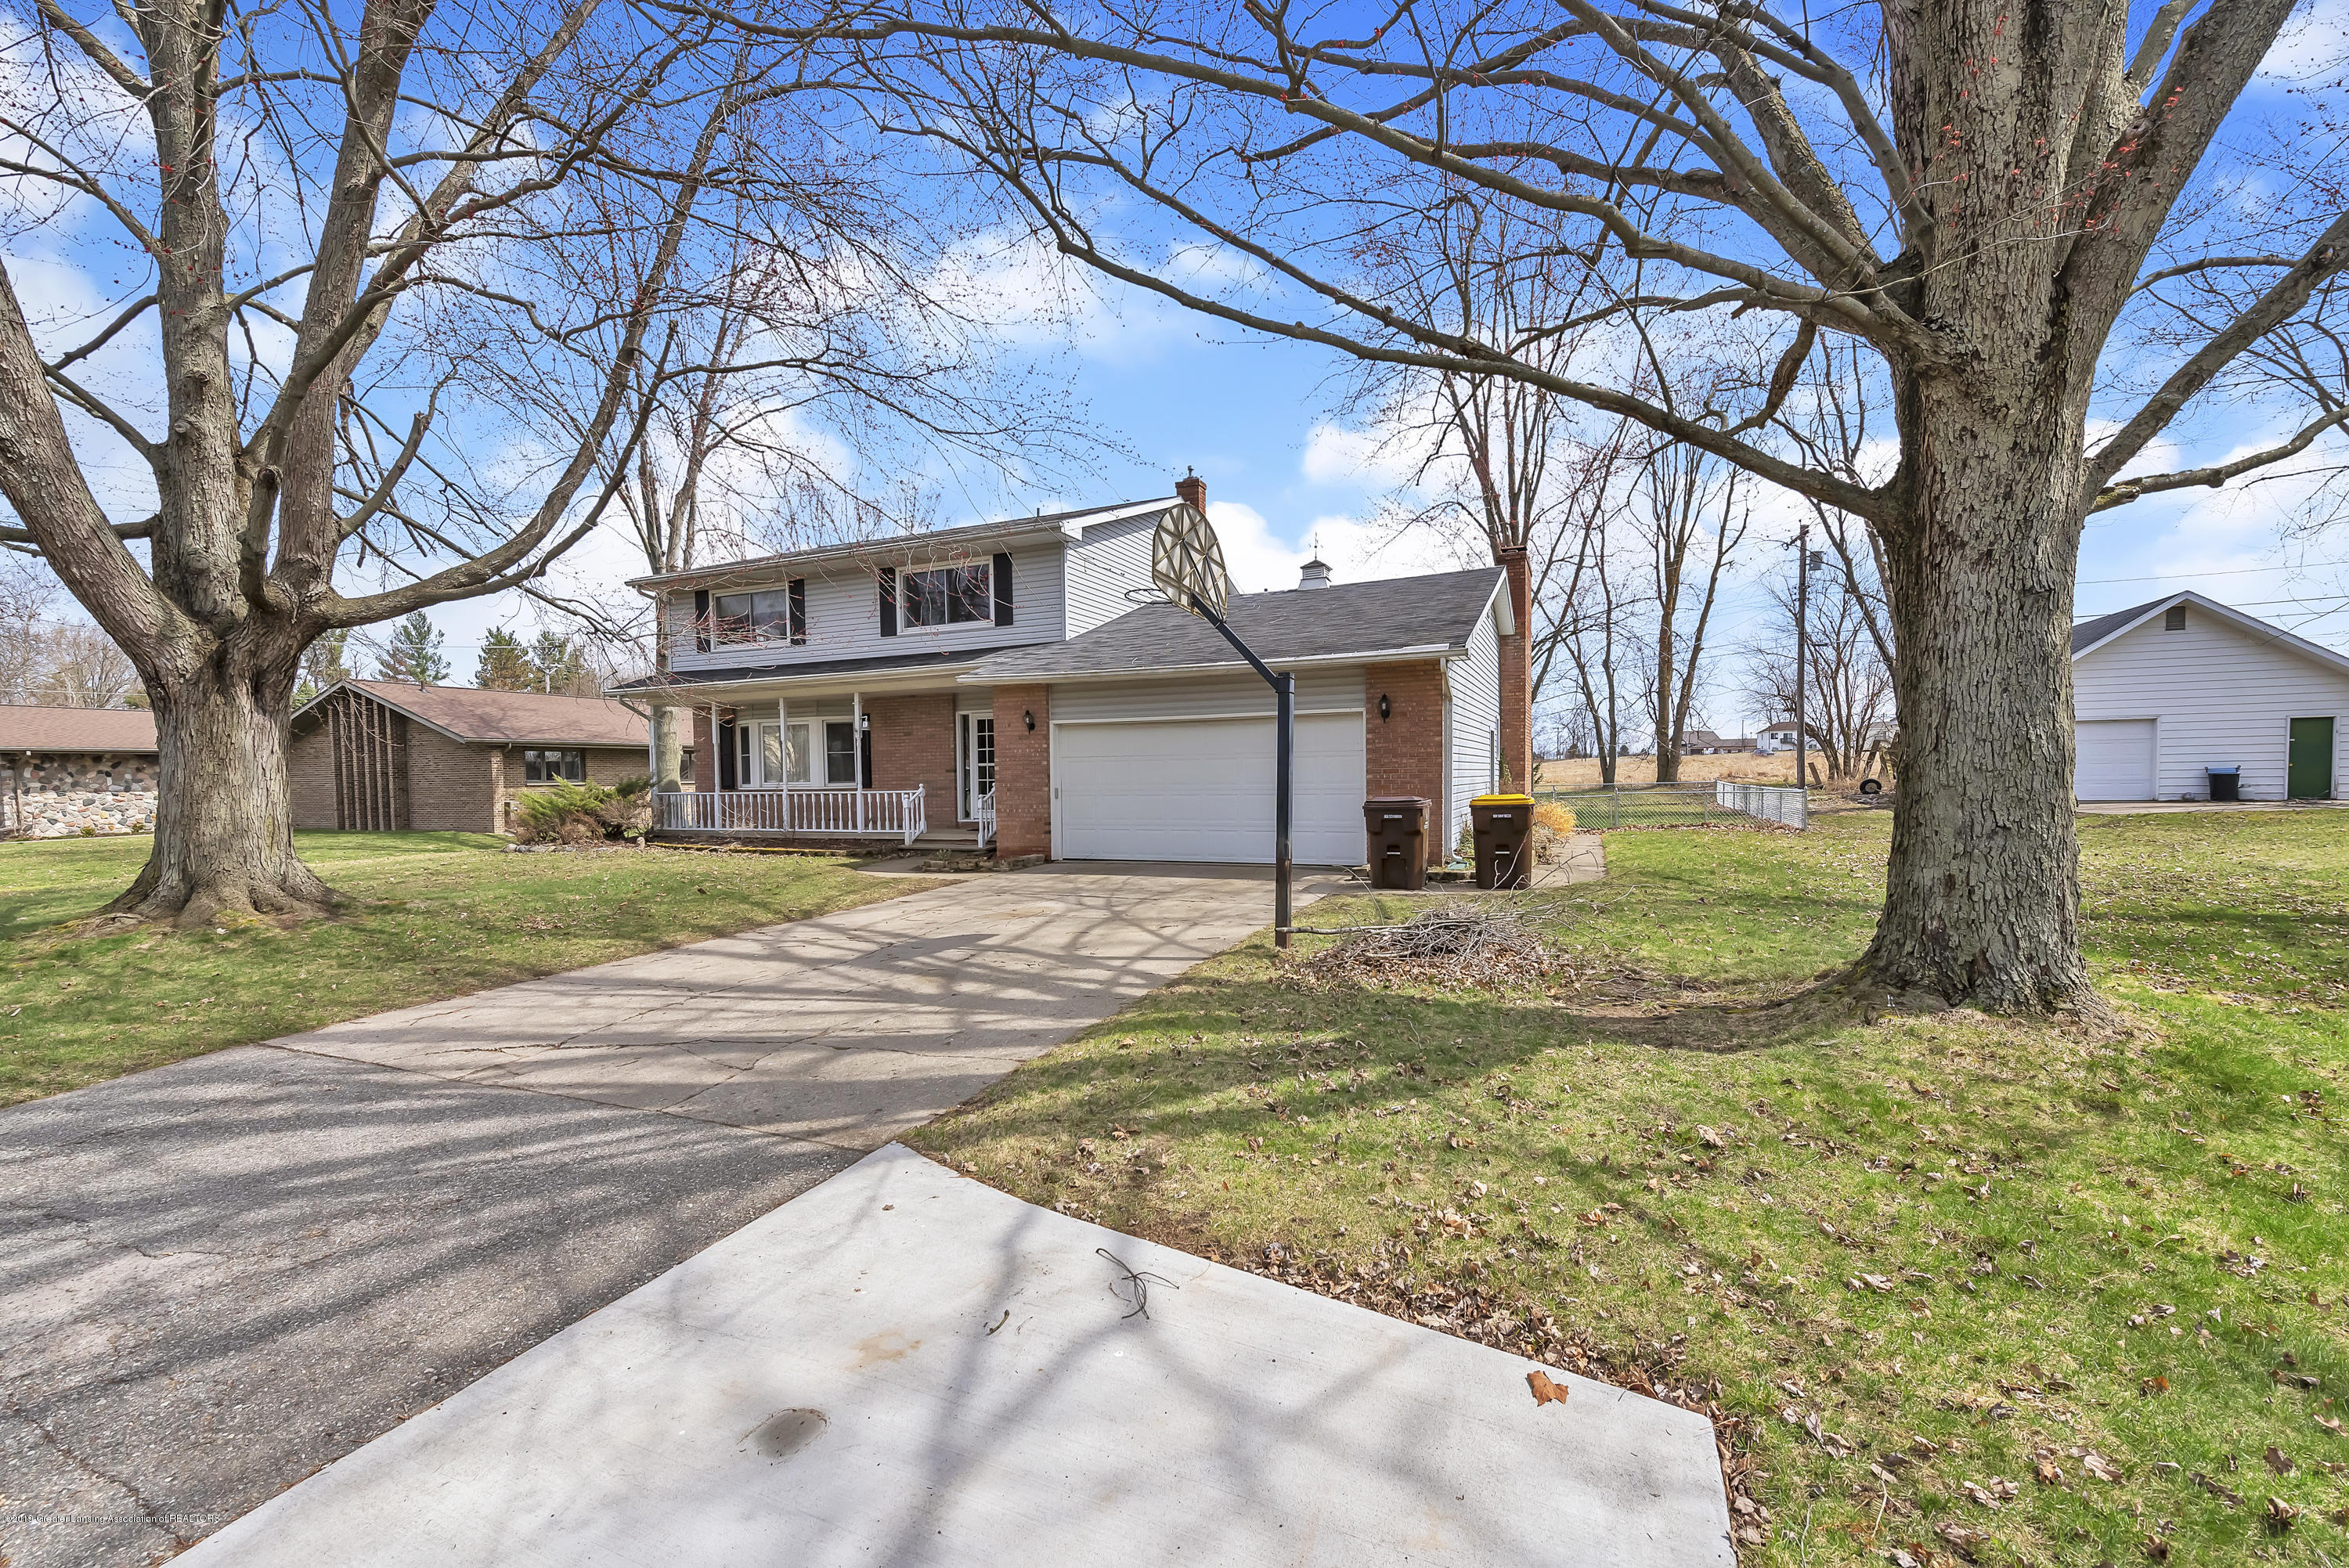 601 Raeburn Rd - 601-Raeburn-Road-Eaton-Rapids-Michigan-w - 4